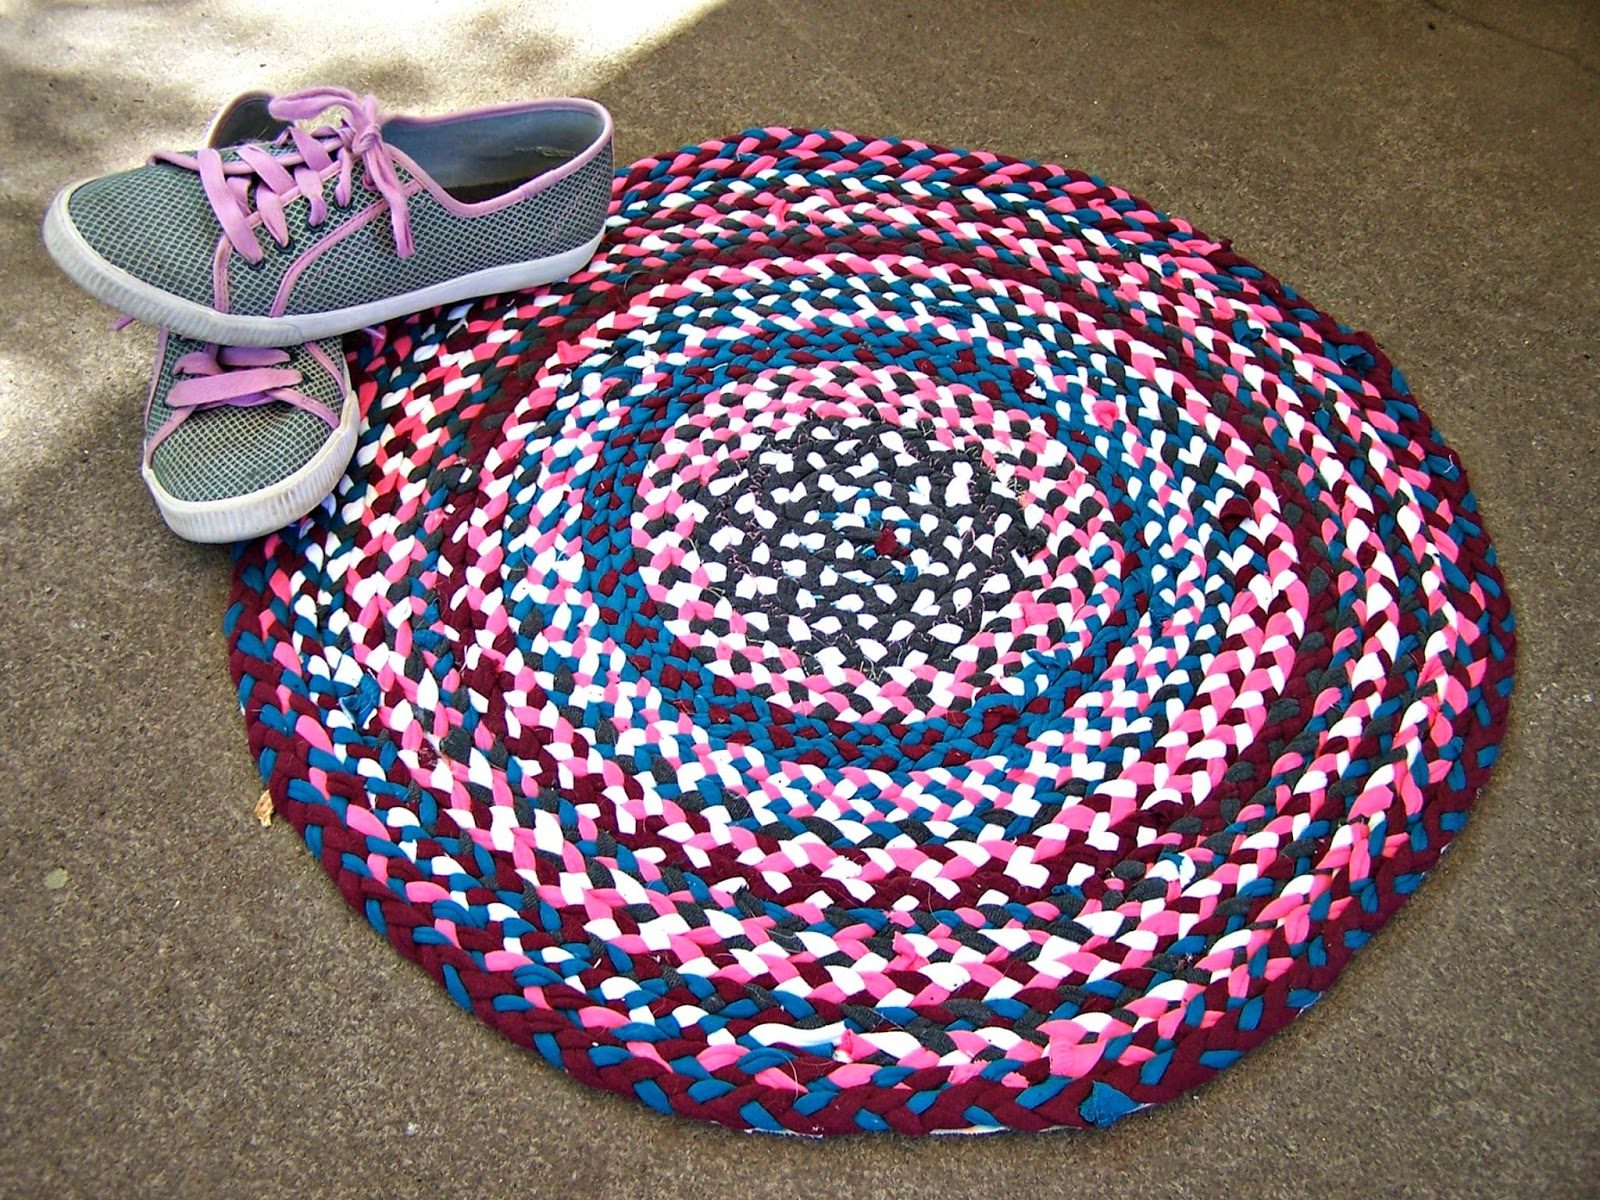 Faster kittykill blog blog tute thursday no sew t for How to make rugs out of old t shirts